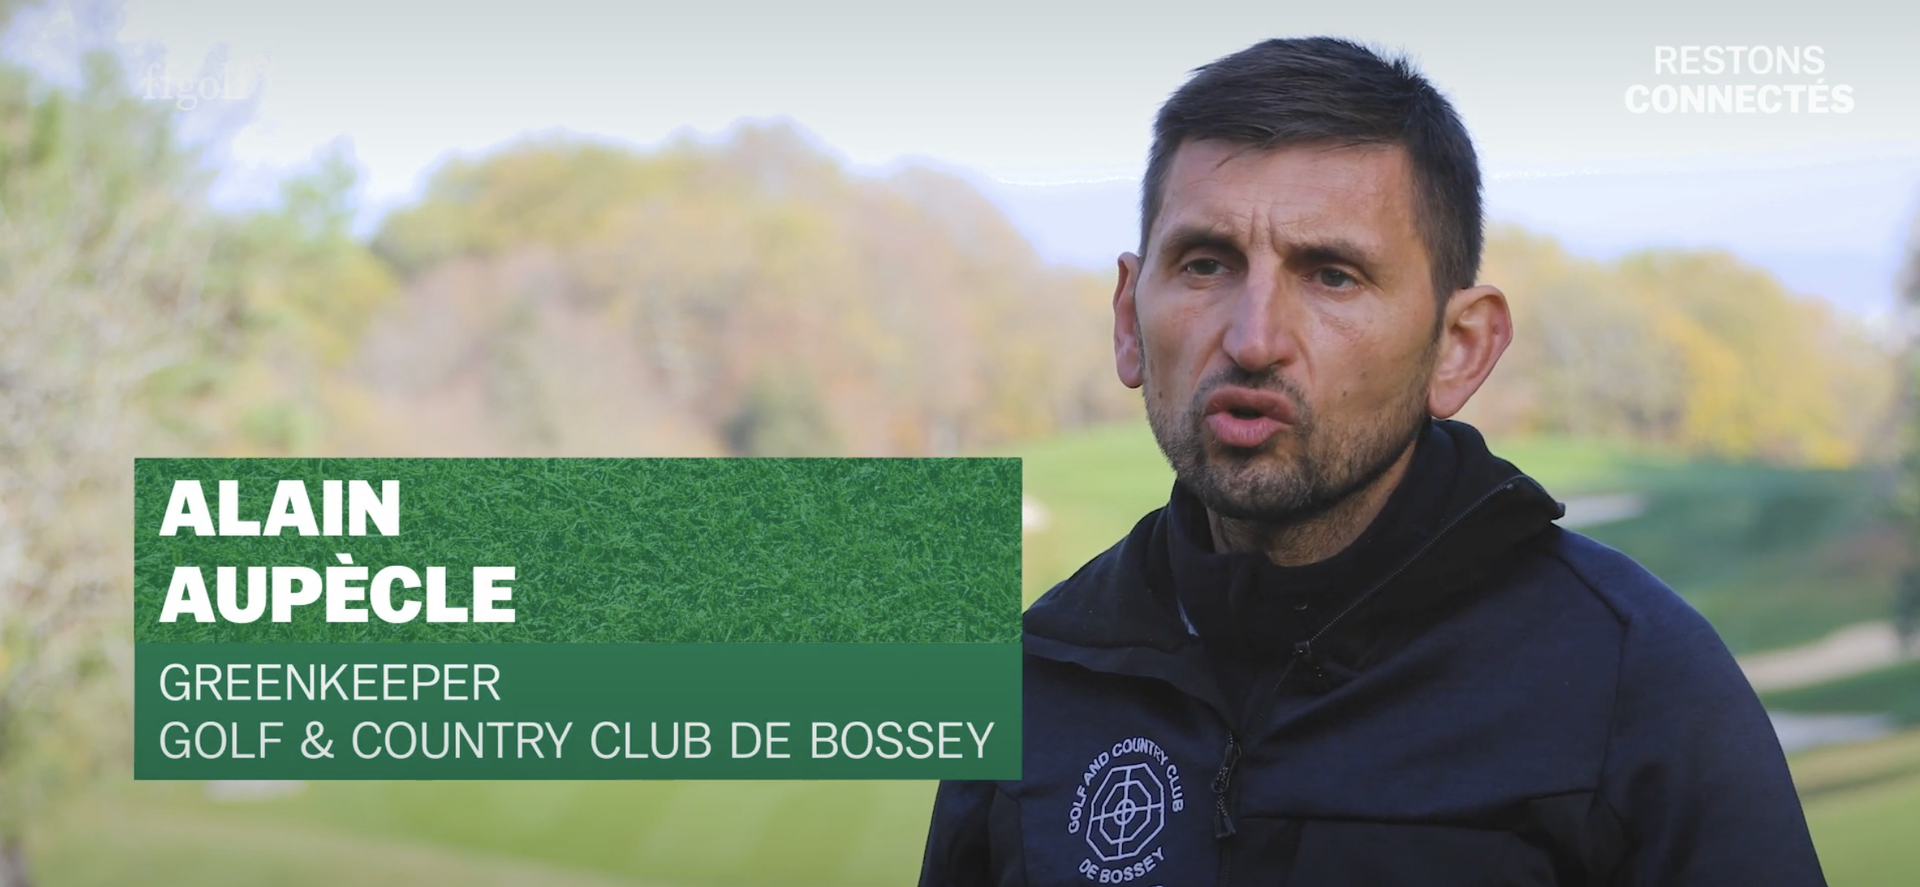 golf-country-club-bossey-aurelien-aupecle-ffg-reportage